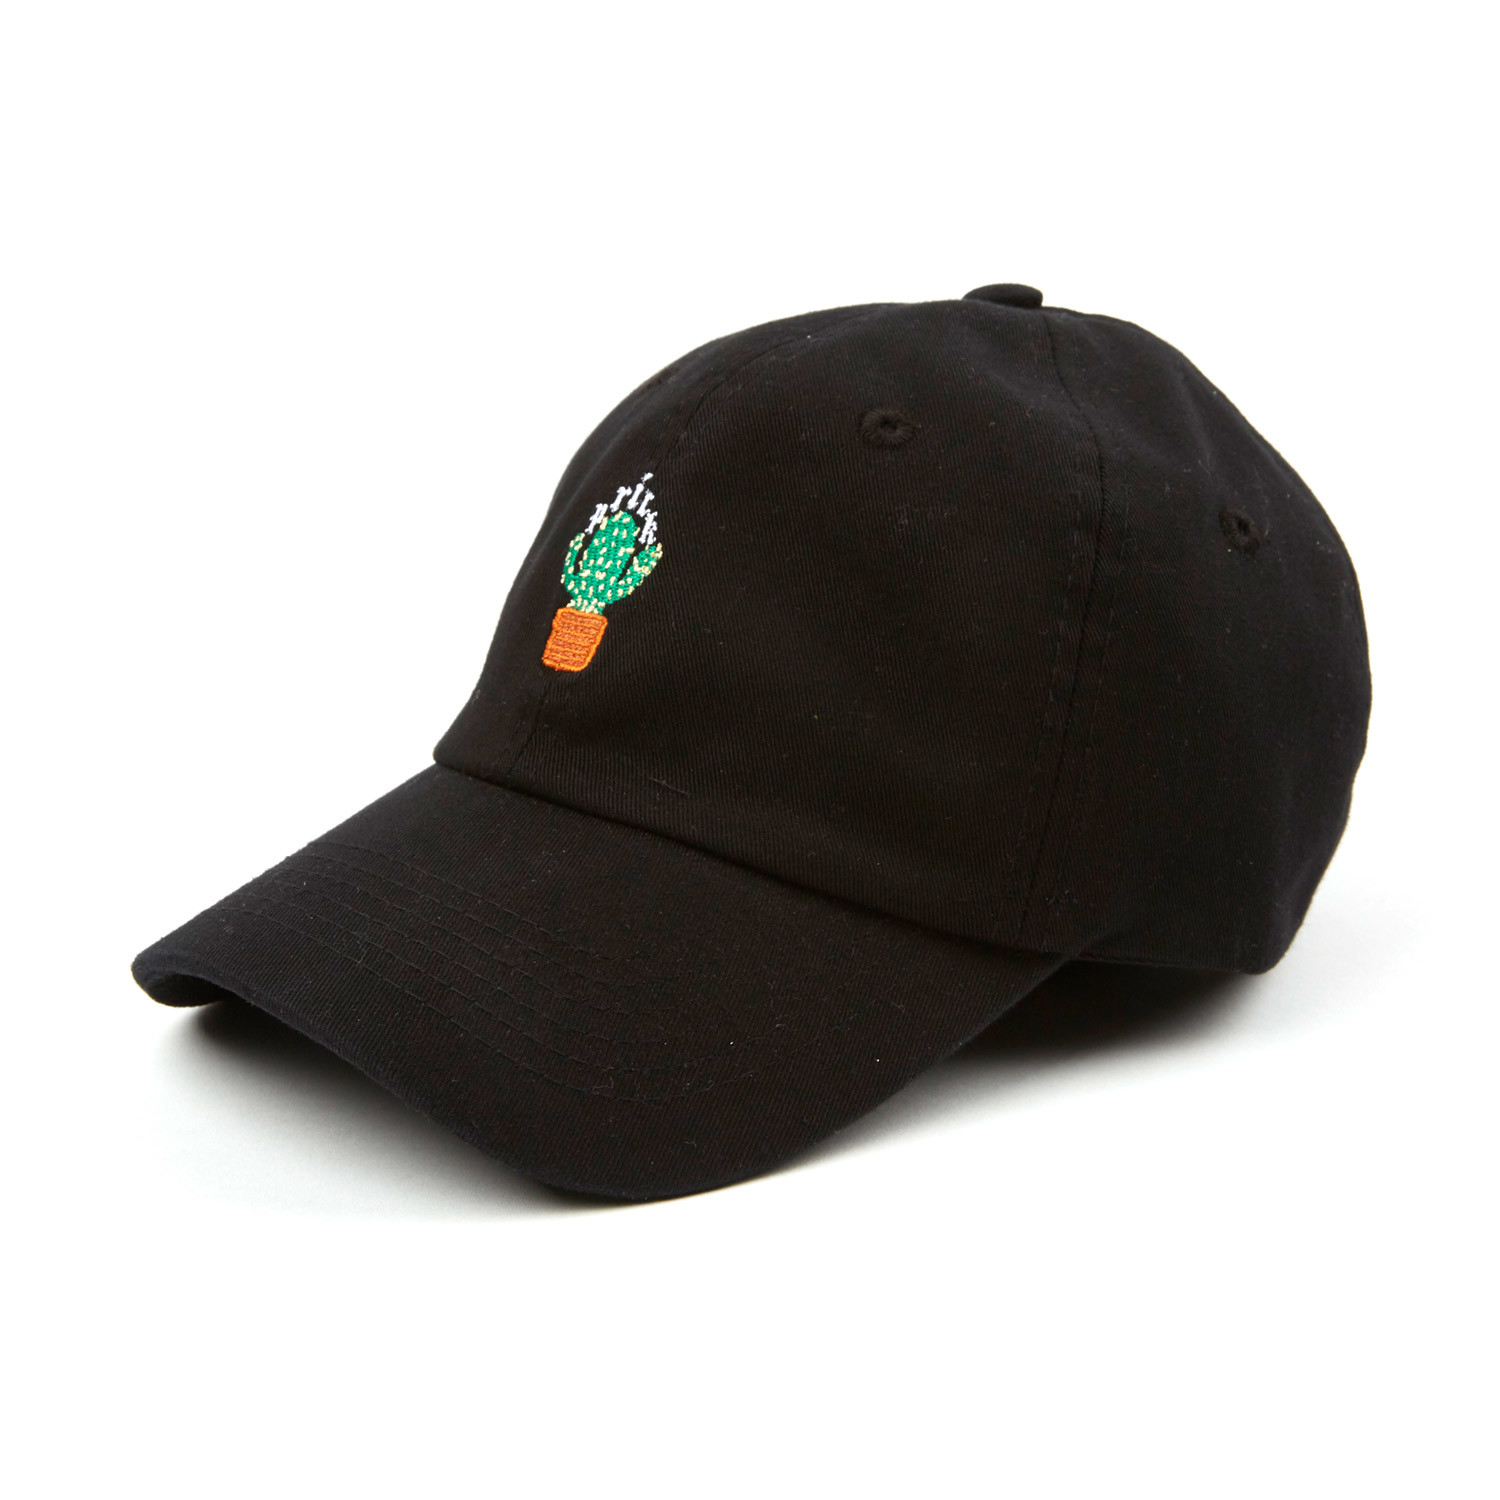 f6bd913e6455b5a1f141257a86862e95_large?1476482026 prick dad hat black any memes touch of modern